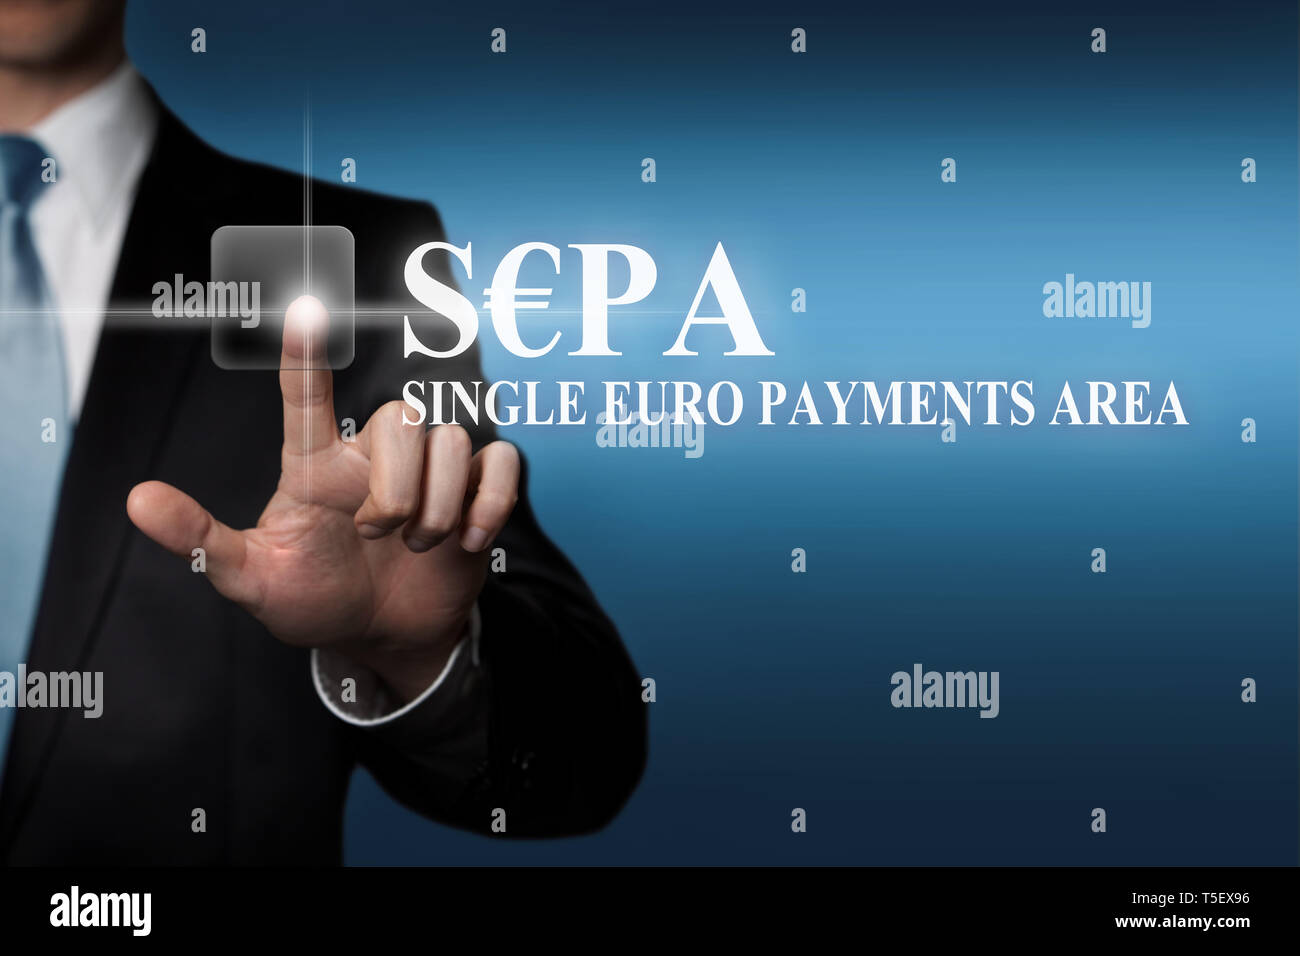 business concept - businessman presses virtual touchscreen button - SEPA Single Euro Payments Area - Stock Image